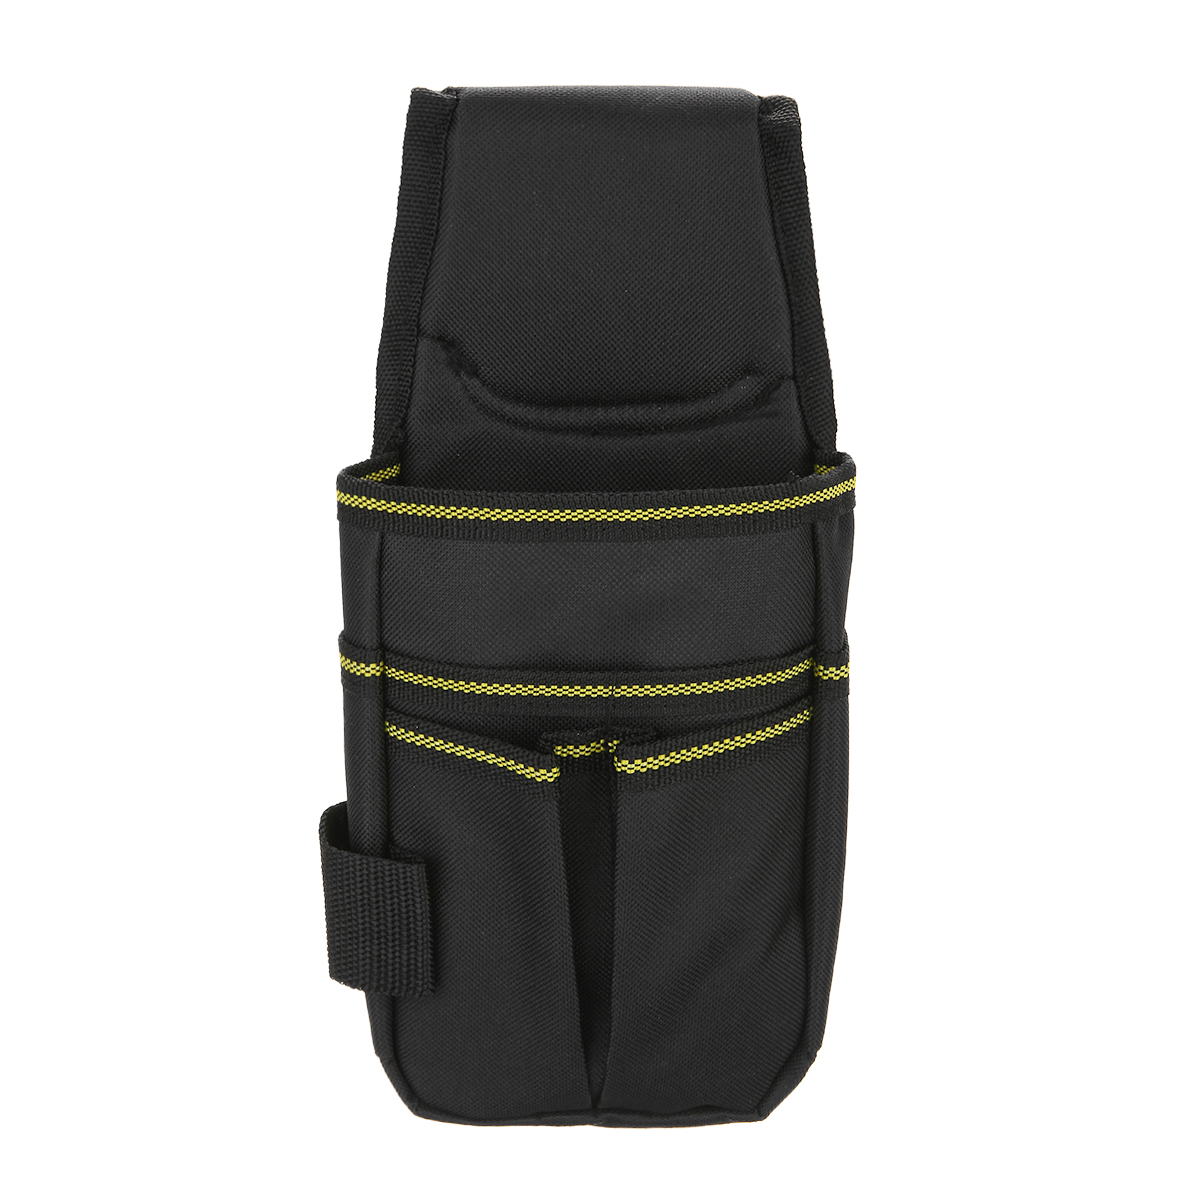 Electrician Tool Bag Waist Pocket Pouch Tool Bag With Belt Screwdriver Holder Storage Bag For Hardware Tool Parts